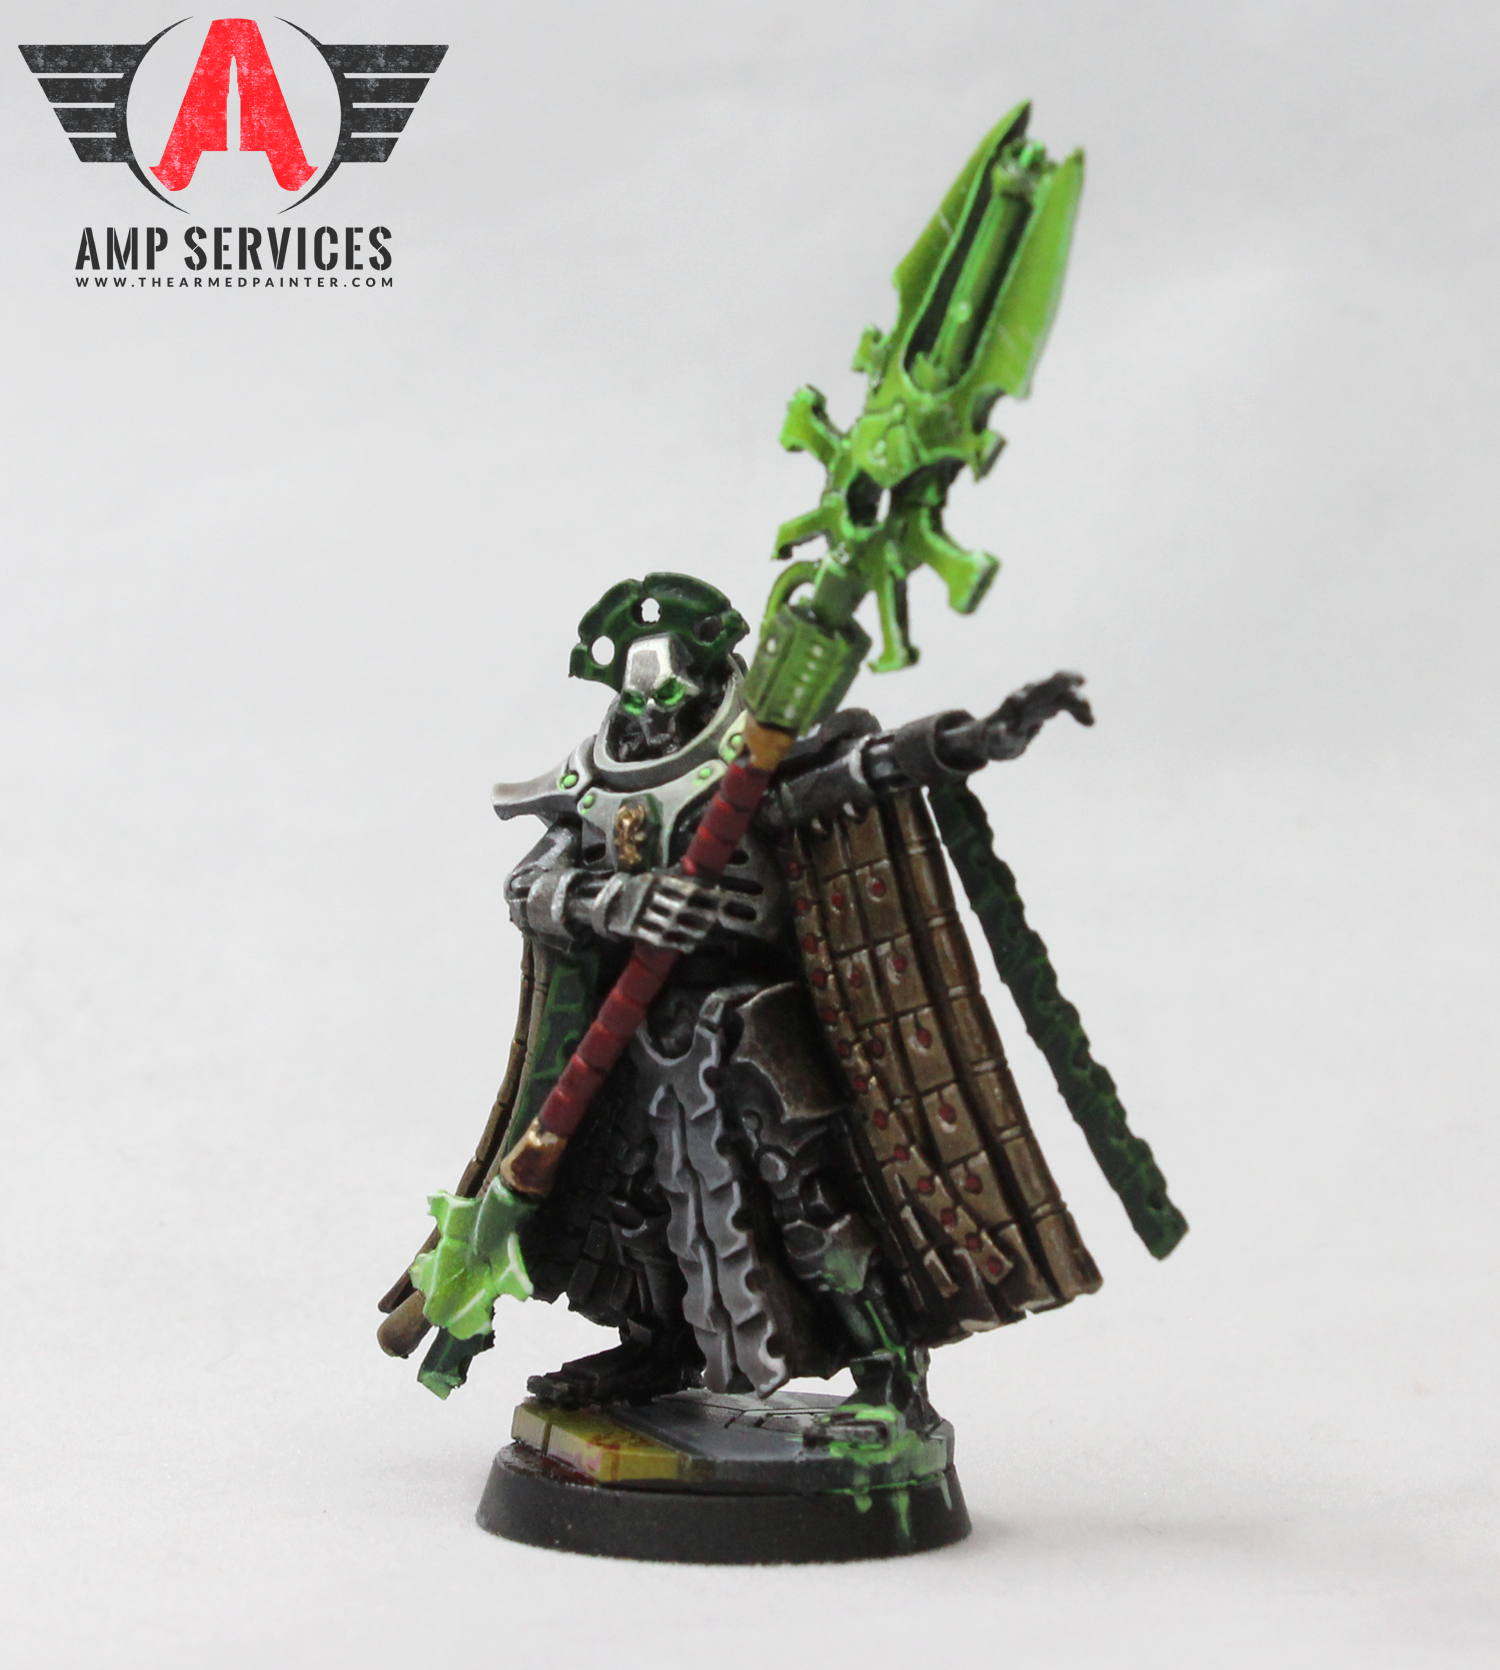 #thearmedpainter, Ampservices, Gamesworkshops, Miniatures, Necrons, Twitch, Warhammer 40,000